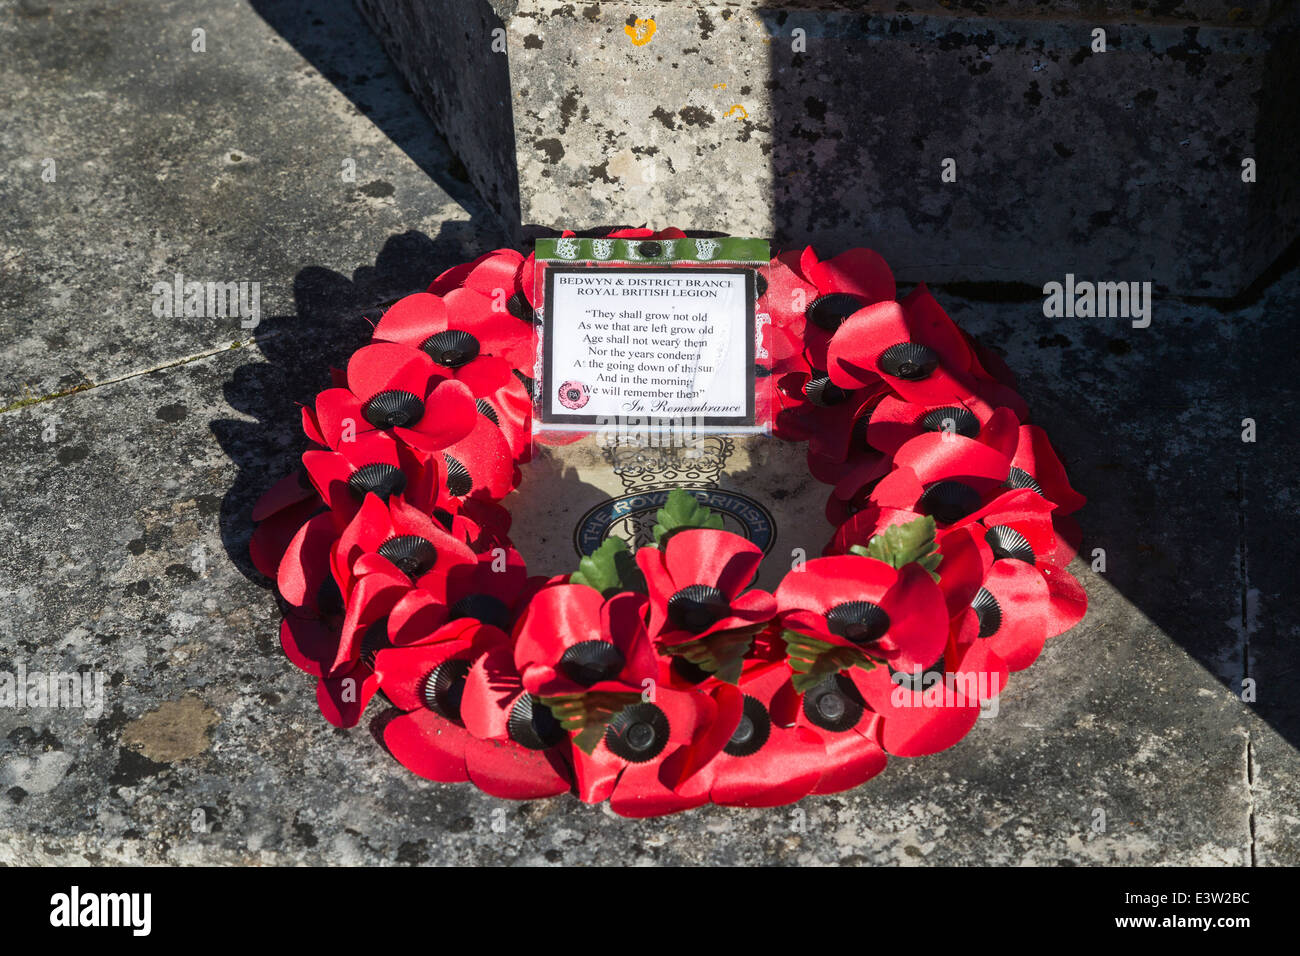 Red poppy Royal British Legion Remembrance Day wreath at Great Bedwyn church, Wiltshire, UK - Stock Image